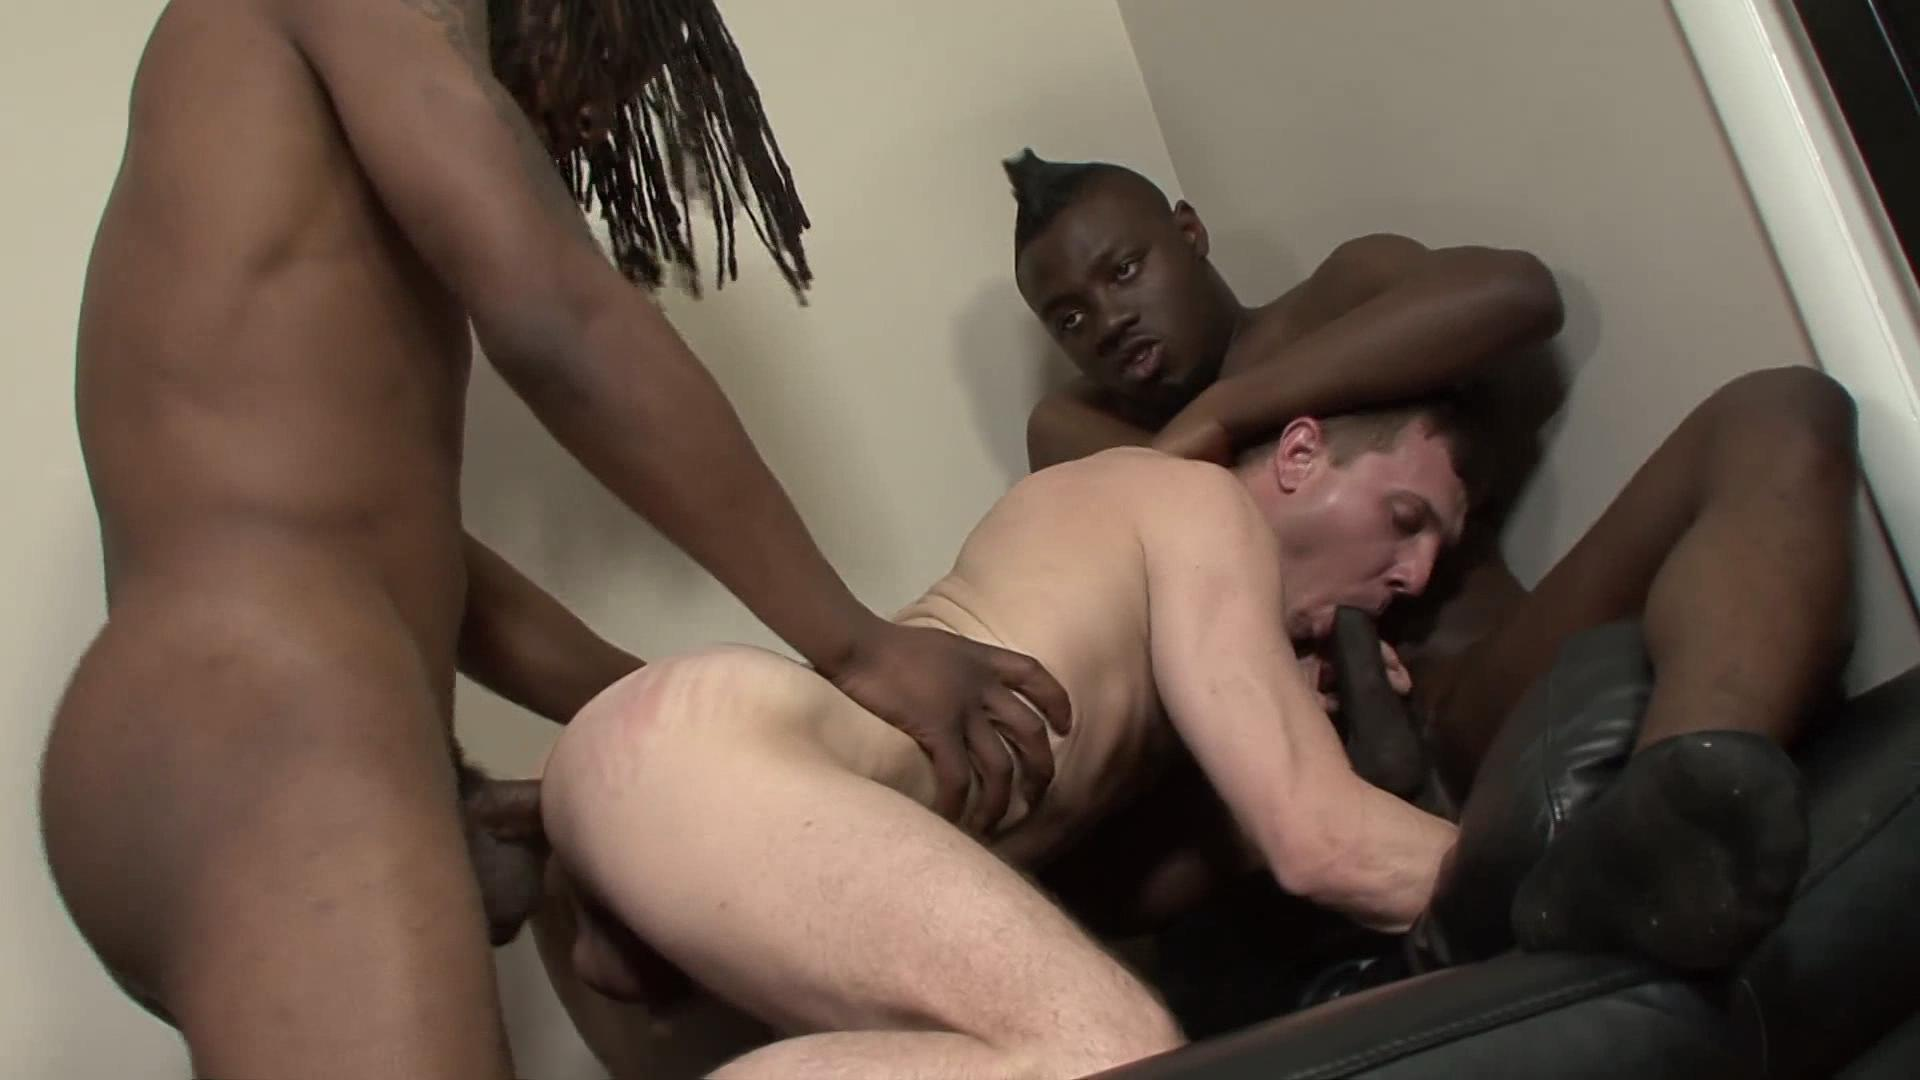 from Lawrence interracial gay sex movie